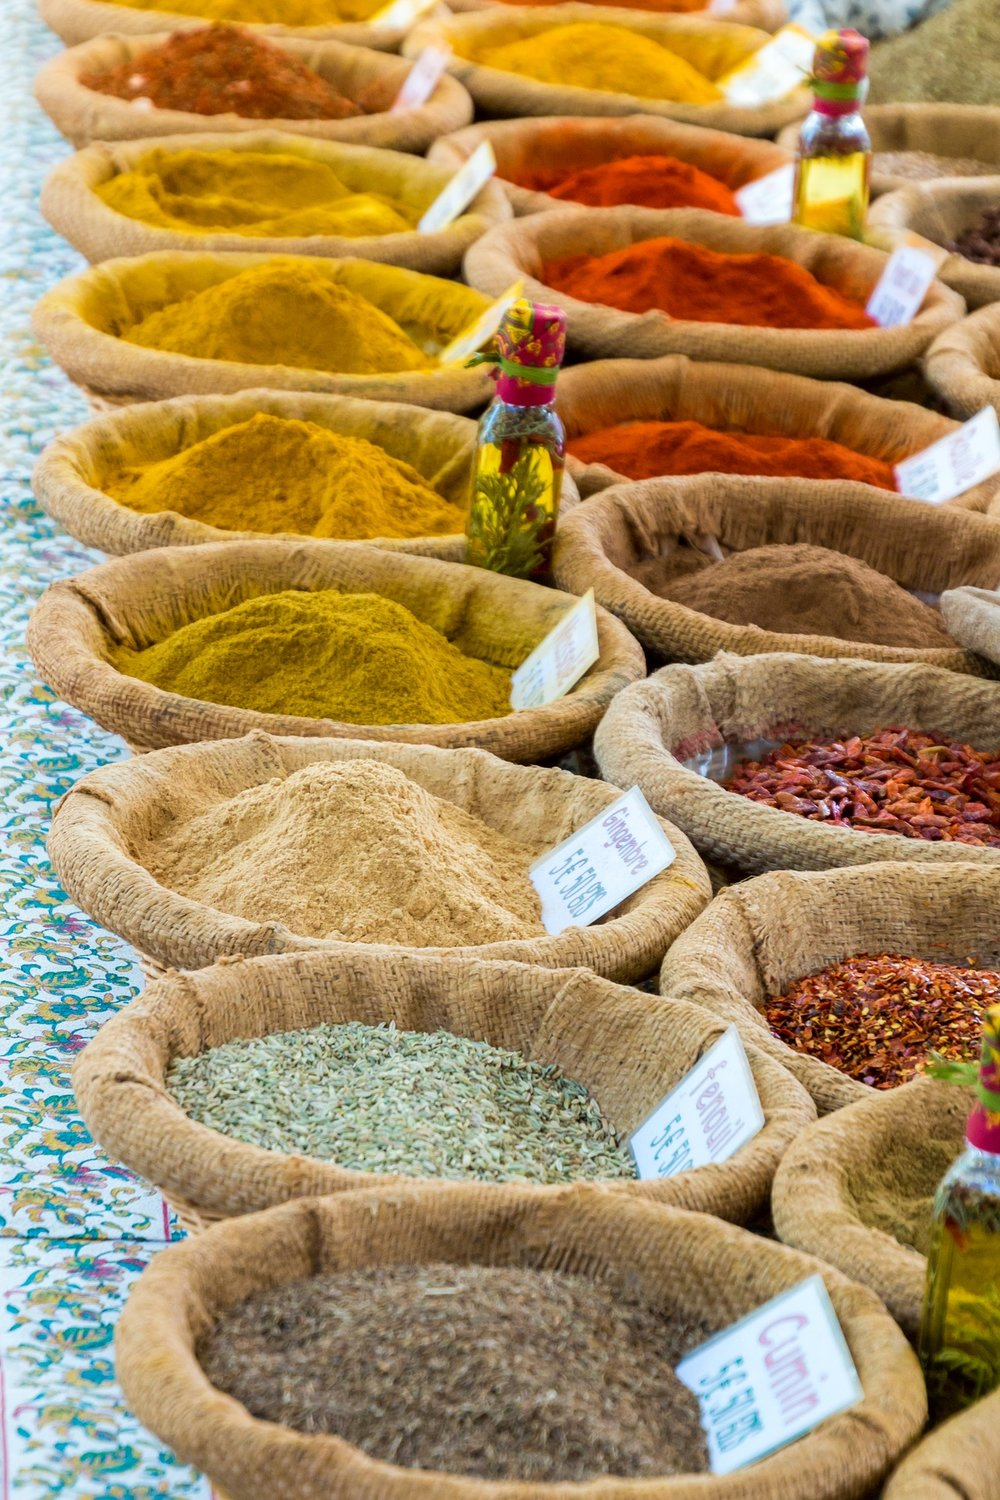 spices-2591557_1920.jpg